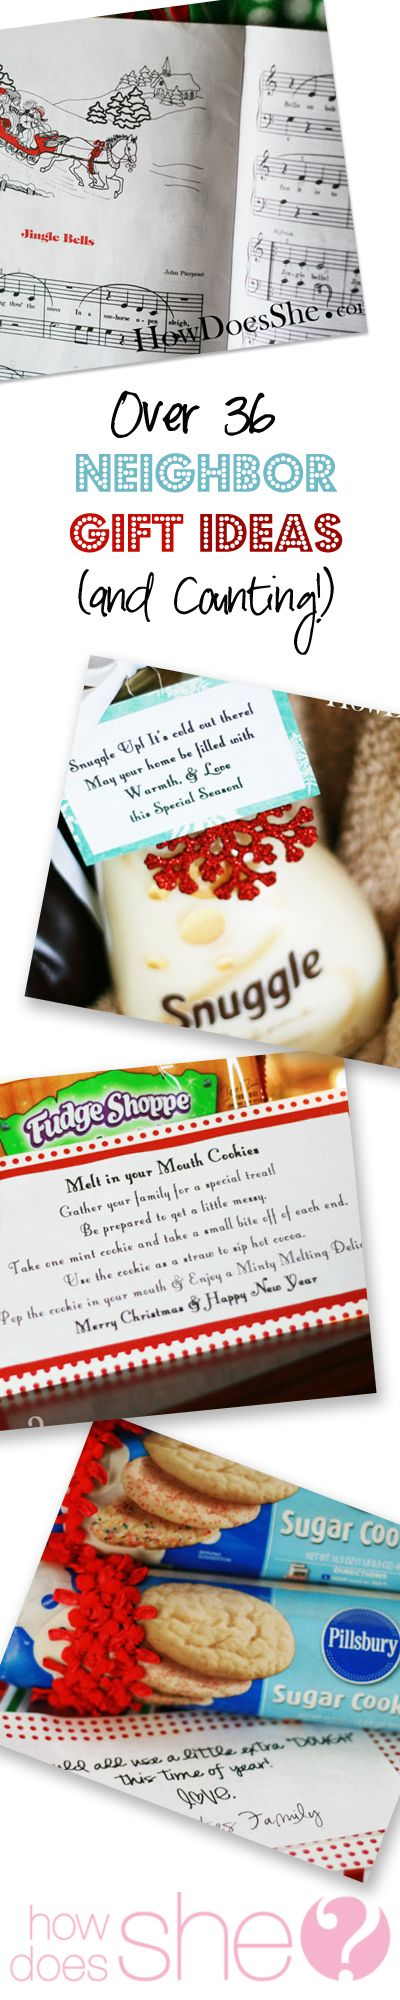 Over 36 Neighbor Gift Ideas and Counting | How Does She